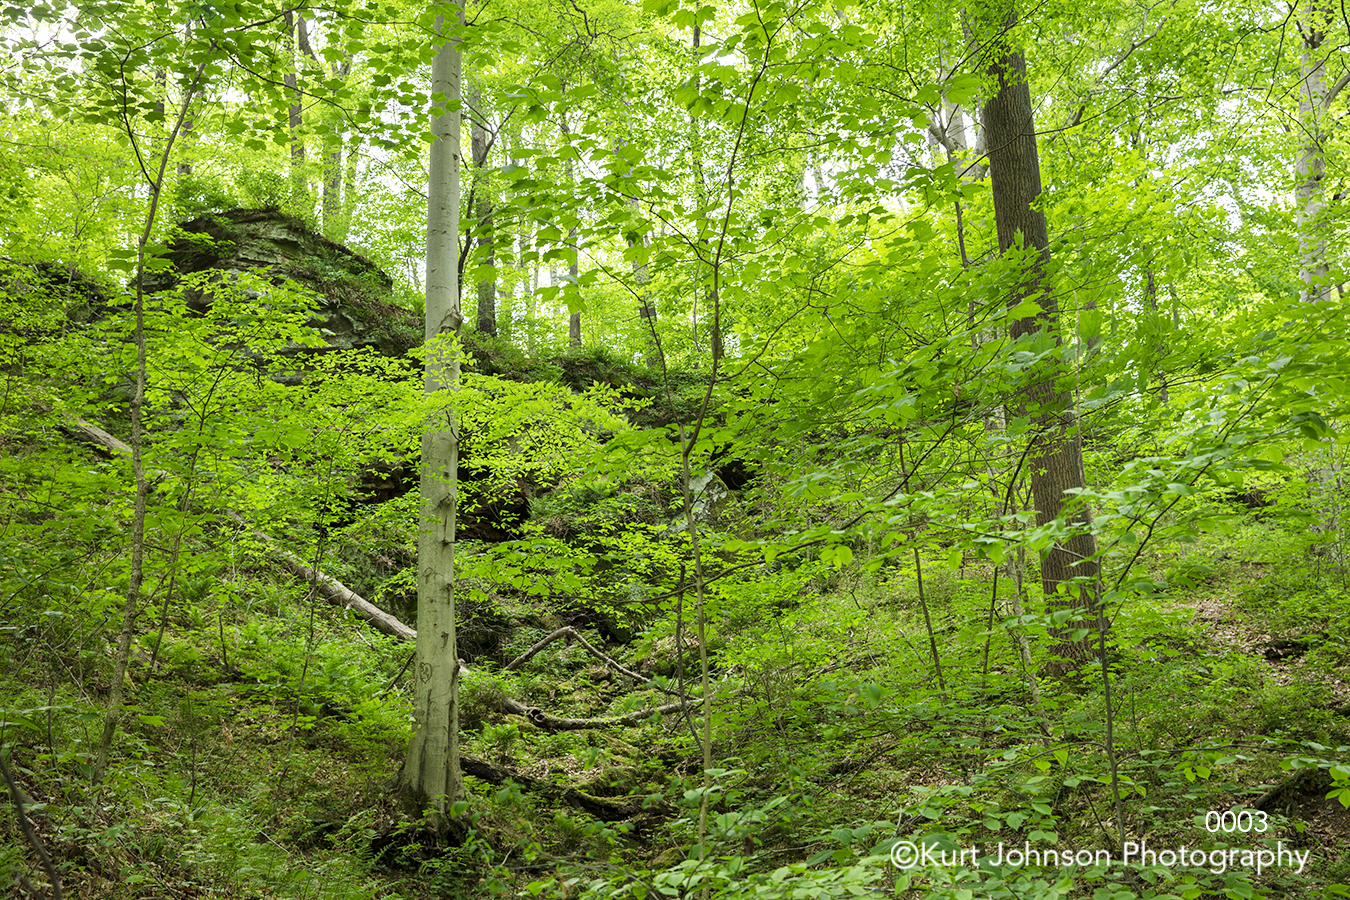 green tree trees forest leaves branches forest landscape hill